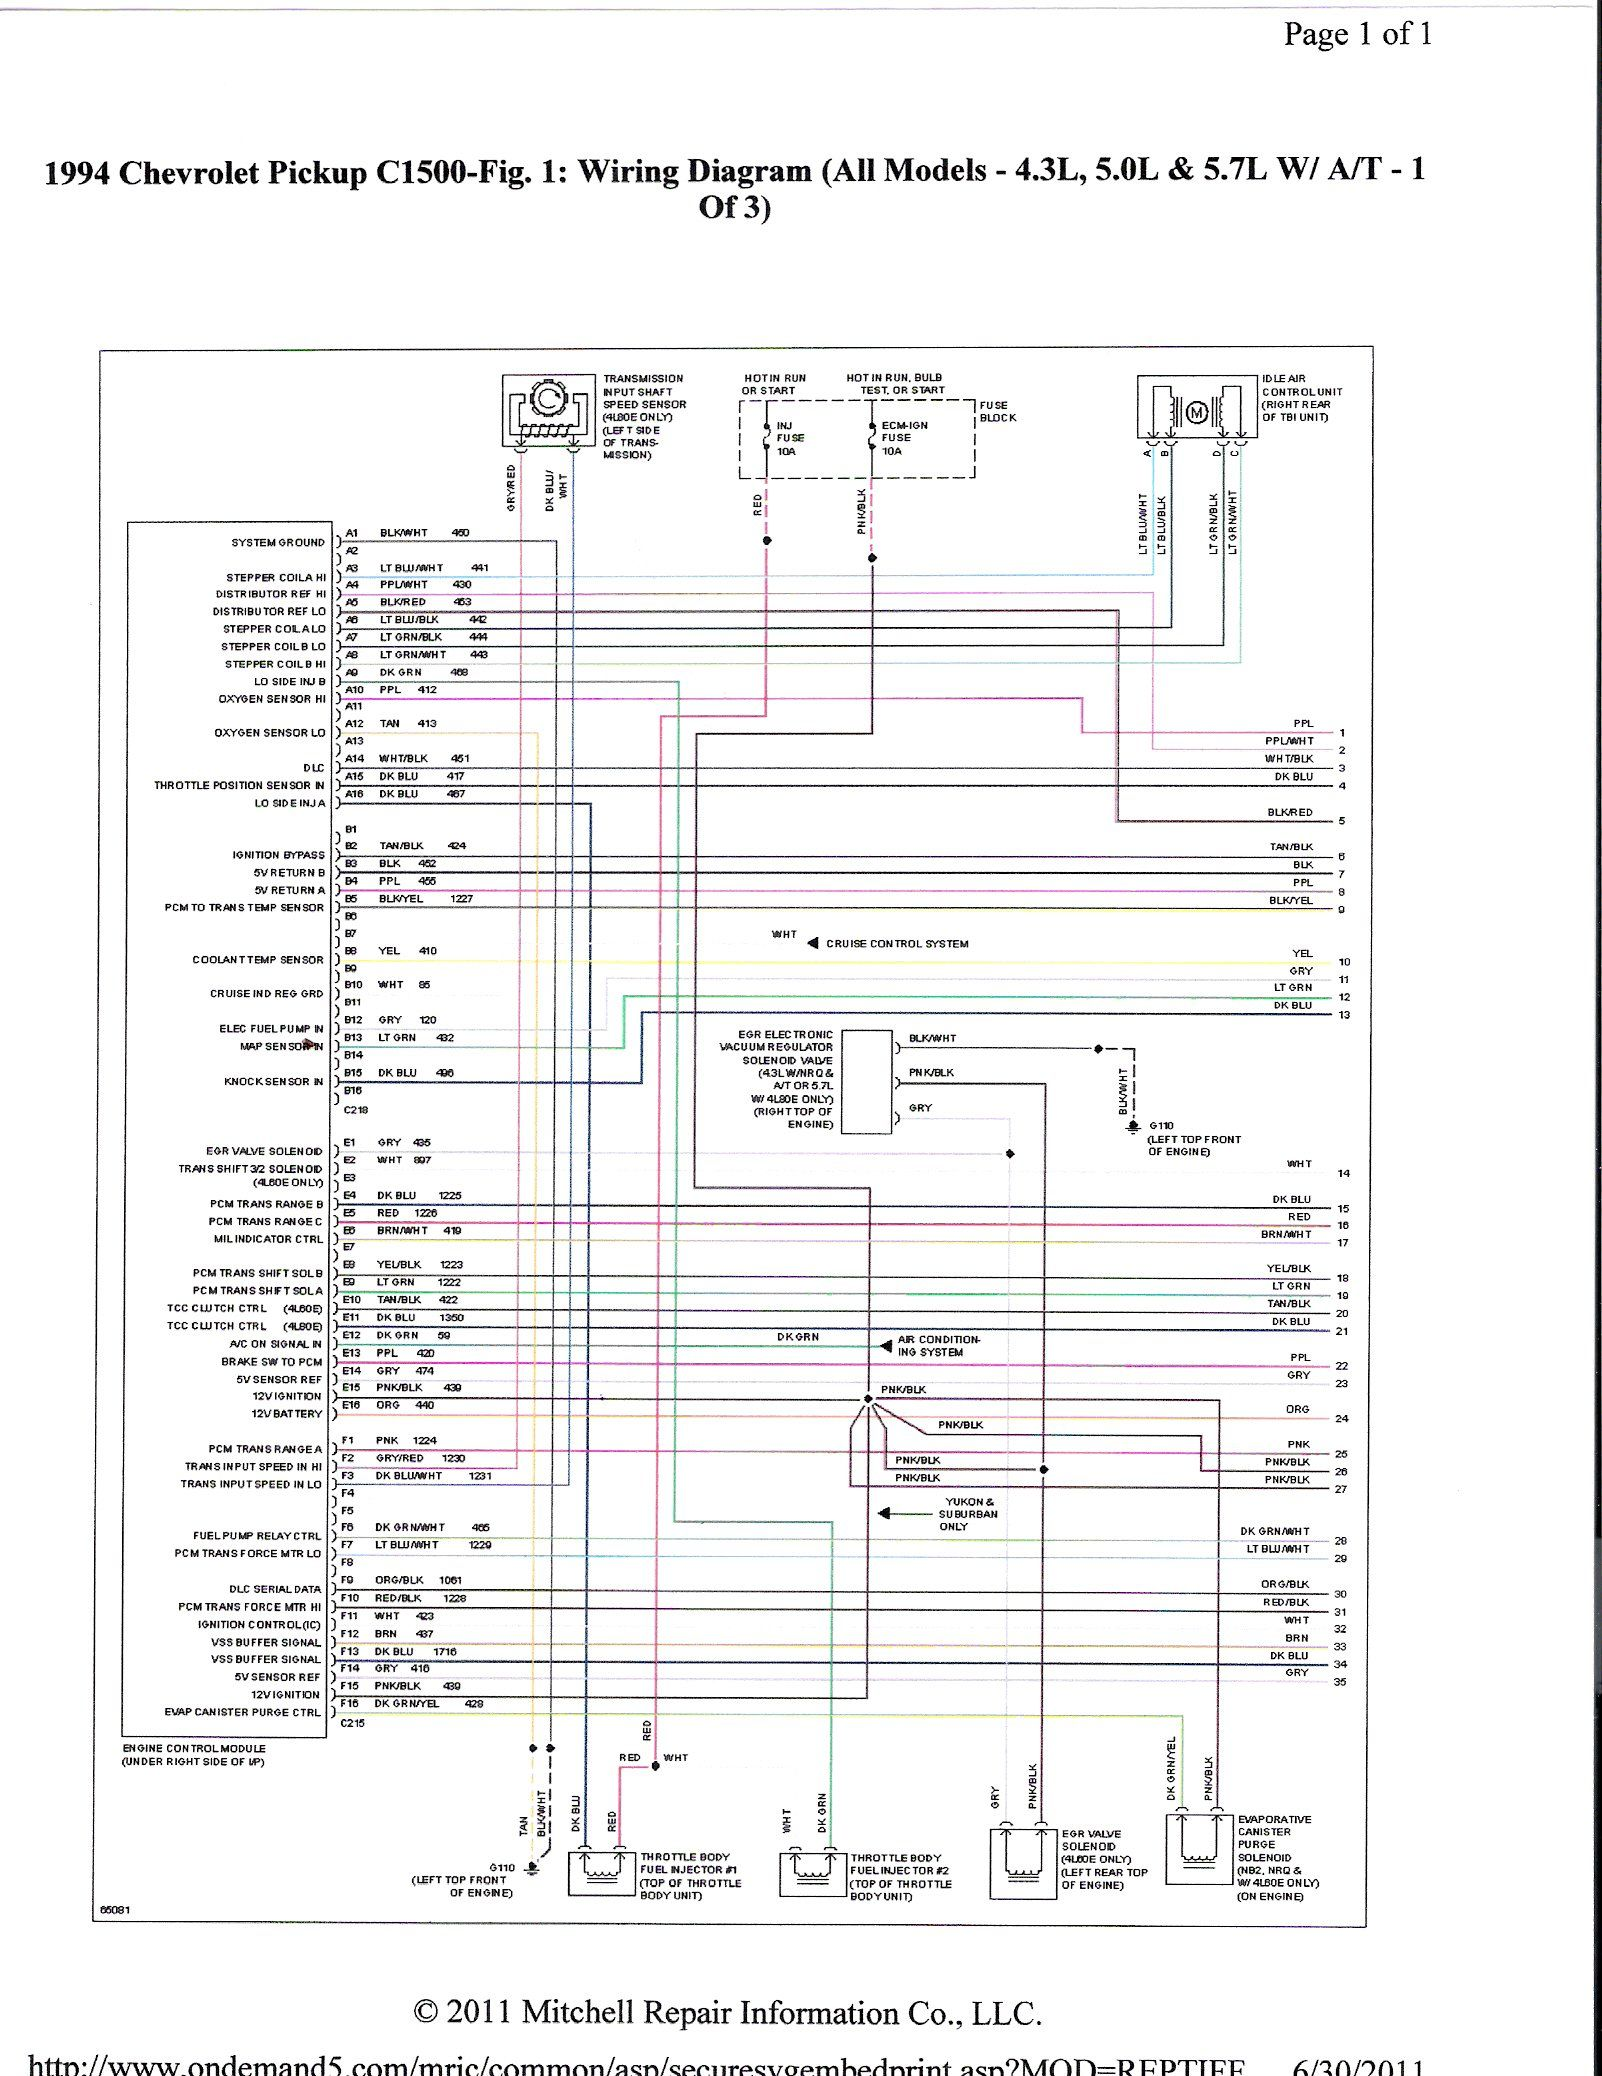 2011 06 30 161235 Scan0001 With 1994 Chevy Silverado Wiring Diagram